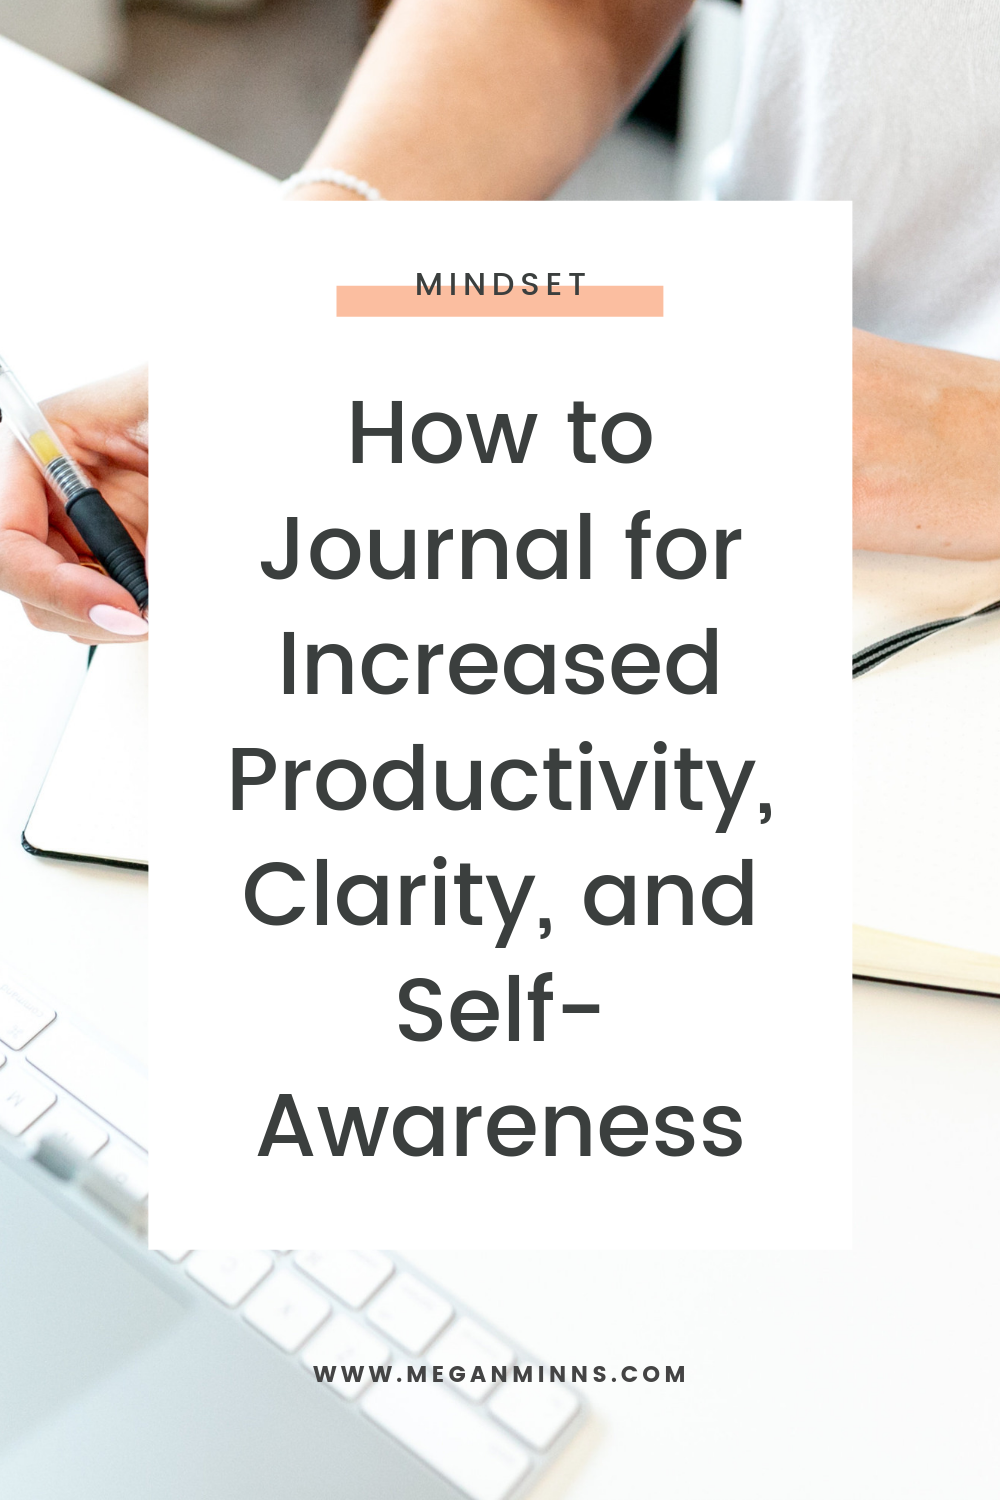 Today I'm sharing four different types of journaling to use to gain more productivity, clarity, and self-awareness in your business and life.   I'll go through some key differences between this type of journaling and keeping a diary as well as paper journaling versus digital journaling.   Make sure you also download my FREE journaling prompts so you can get started with your own life-changing journaling session.  READ THE FULL BLOG POST ➡️ https://meganminns.com/blog/how-to-journal